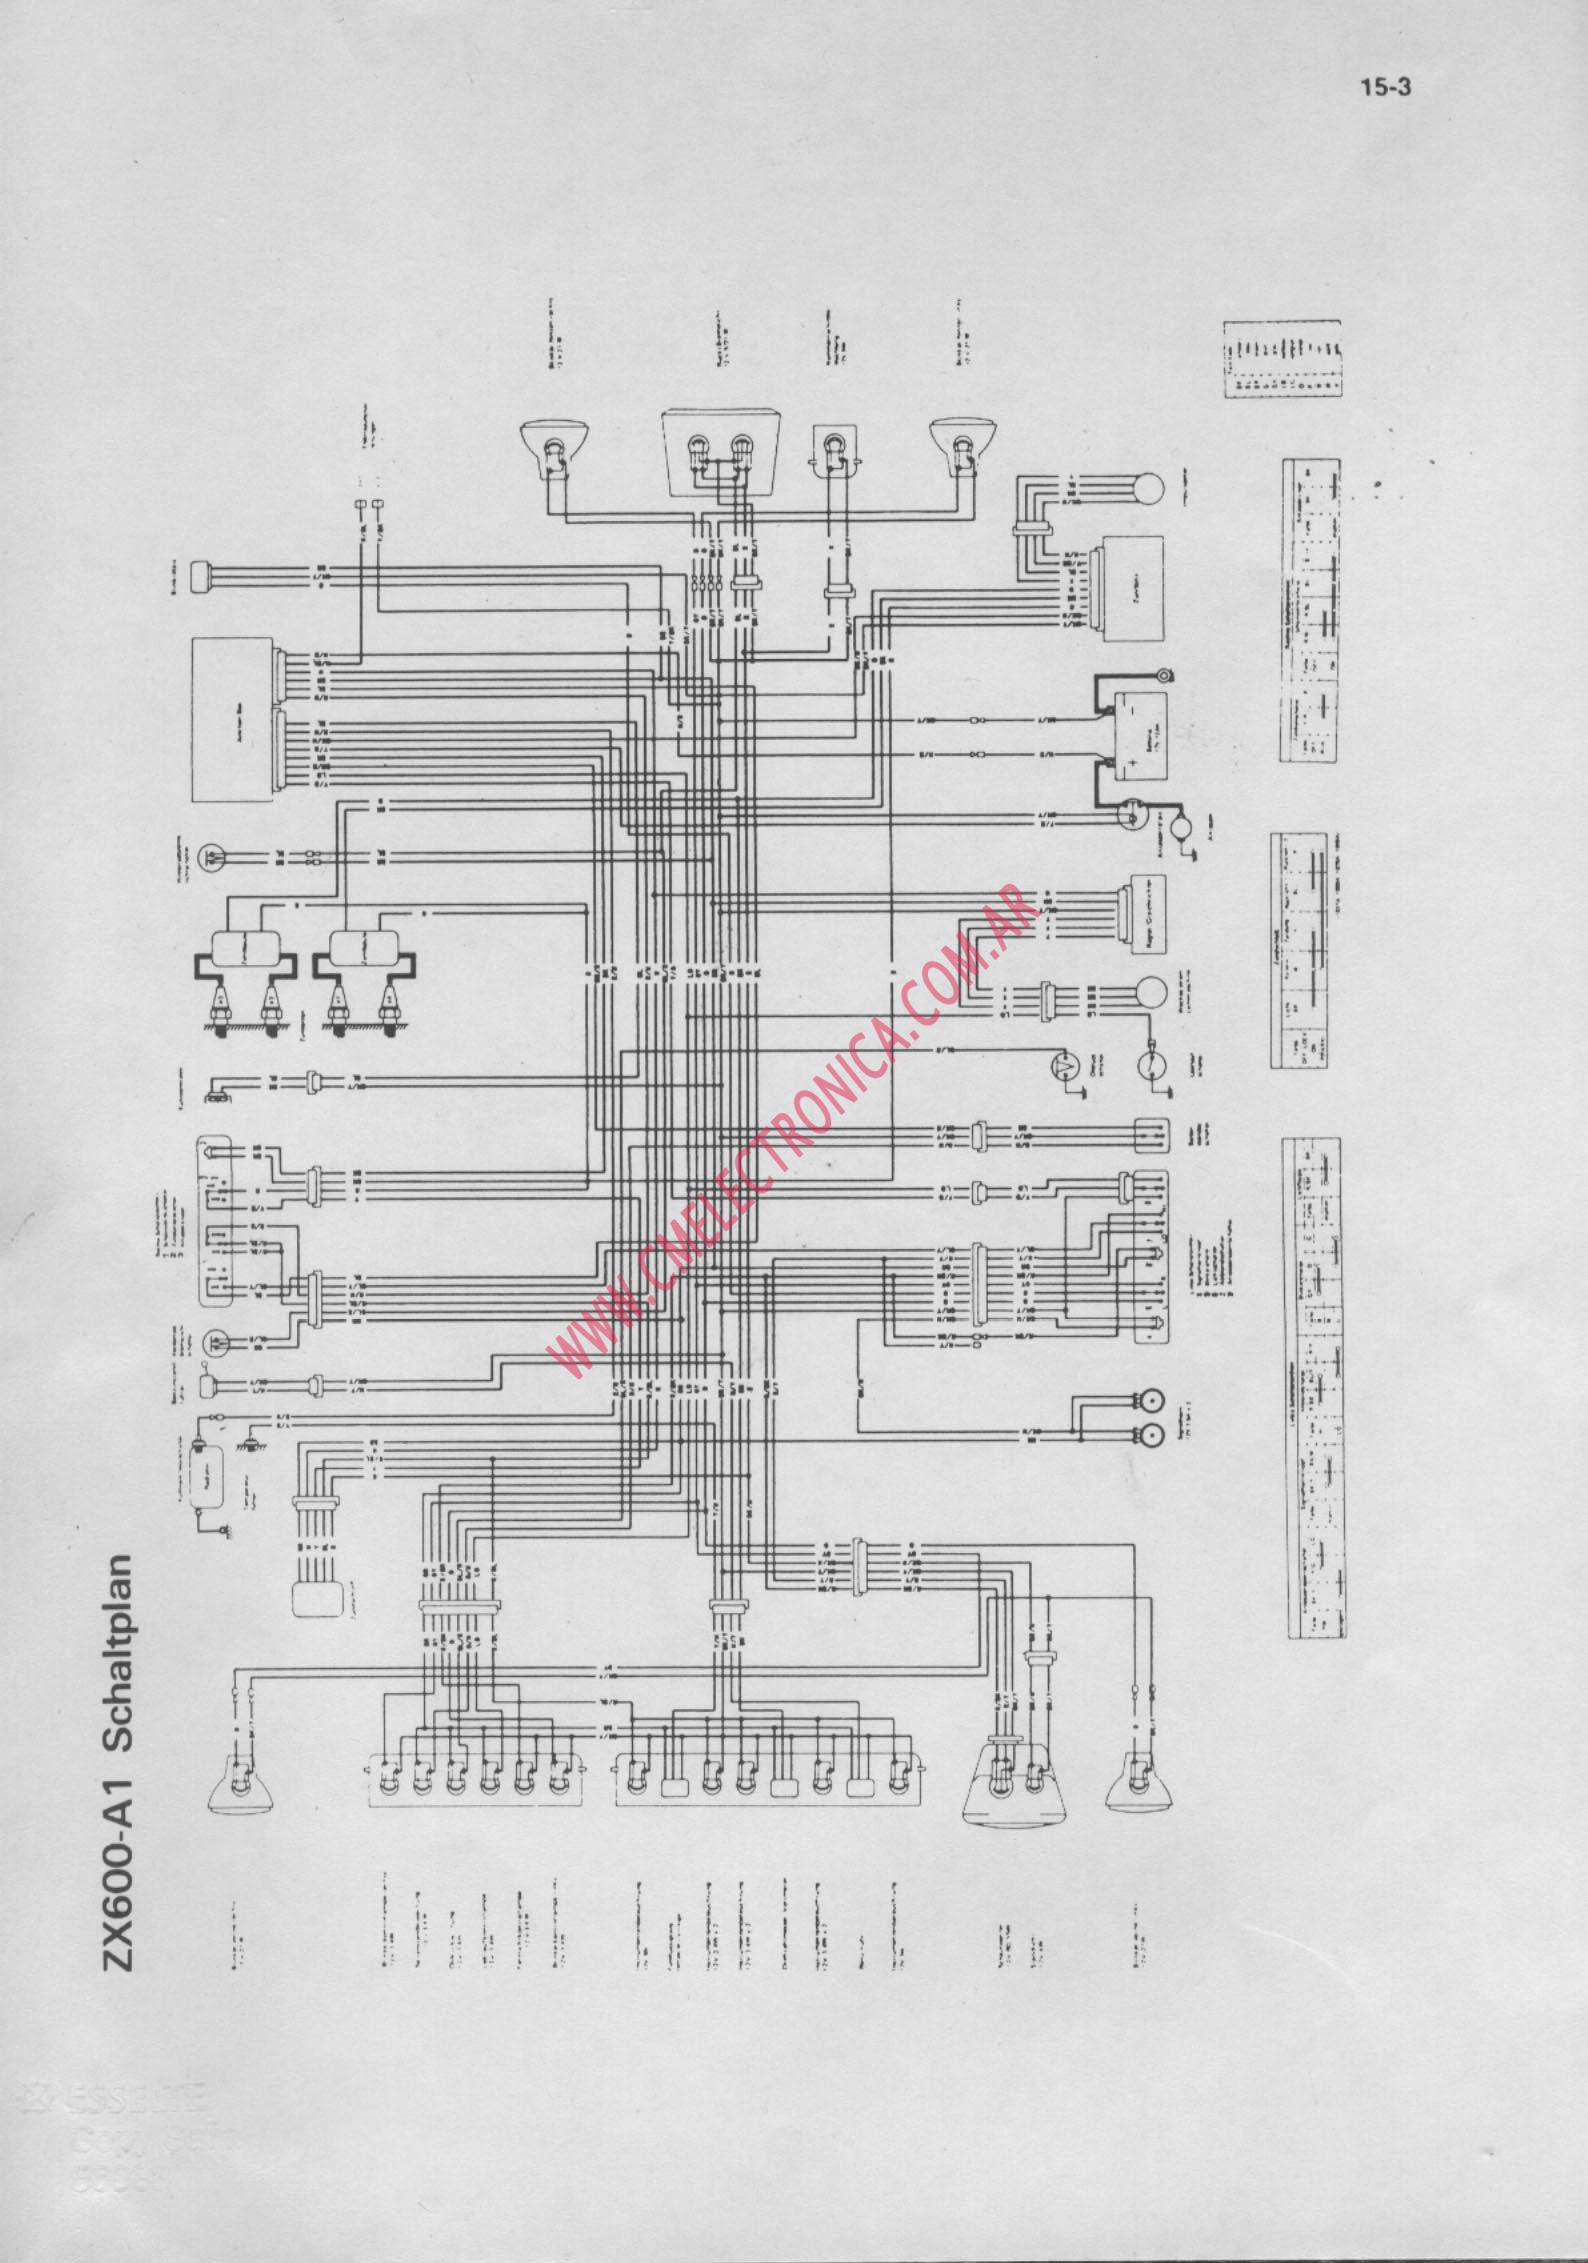 Zx600 Wiring Diagram Enthusiast Diagrams Kz440 Smart Data U2022 Rh Mikeadkinsguitar Com Concertone 3